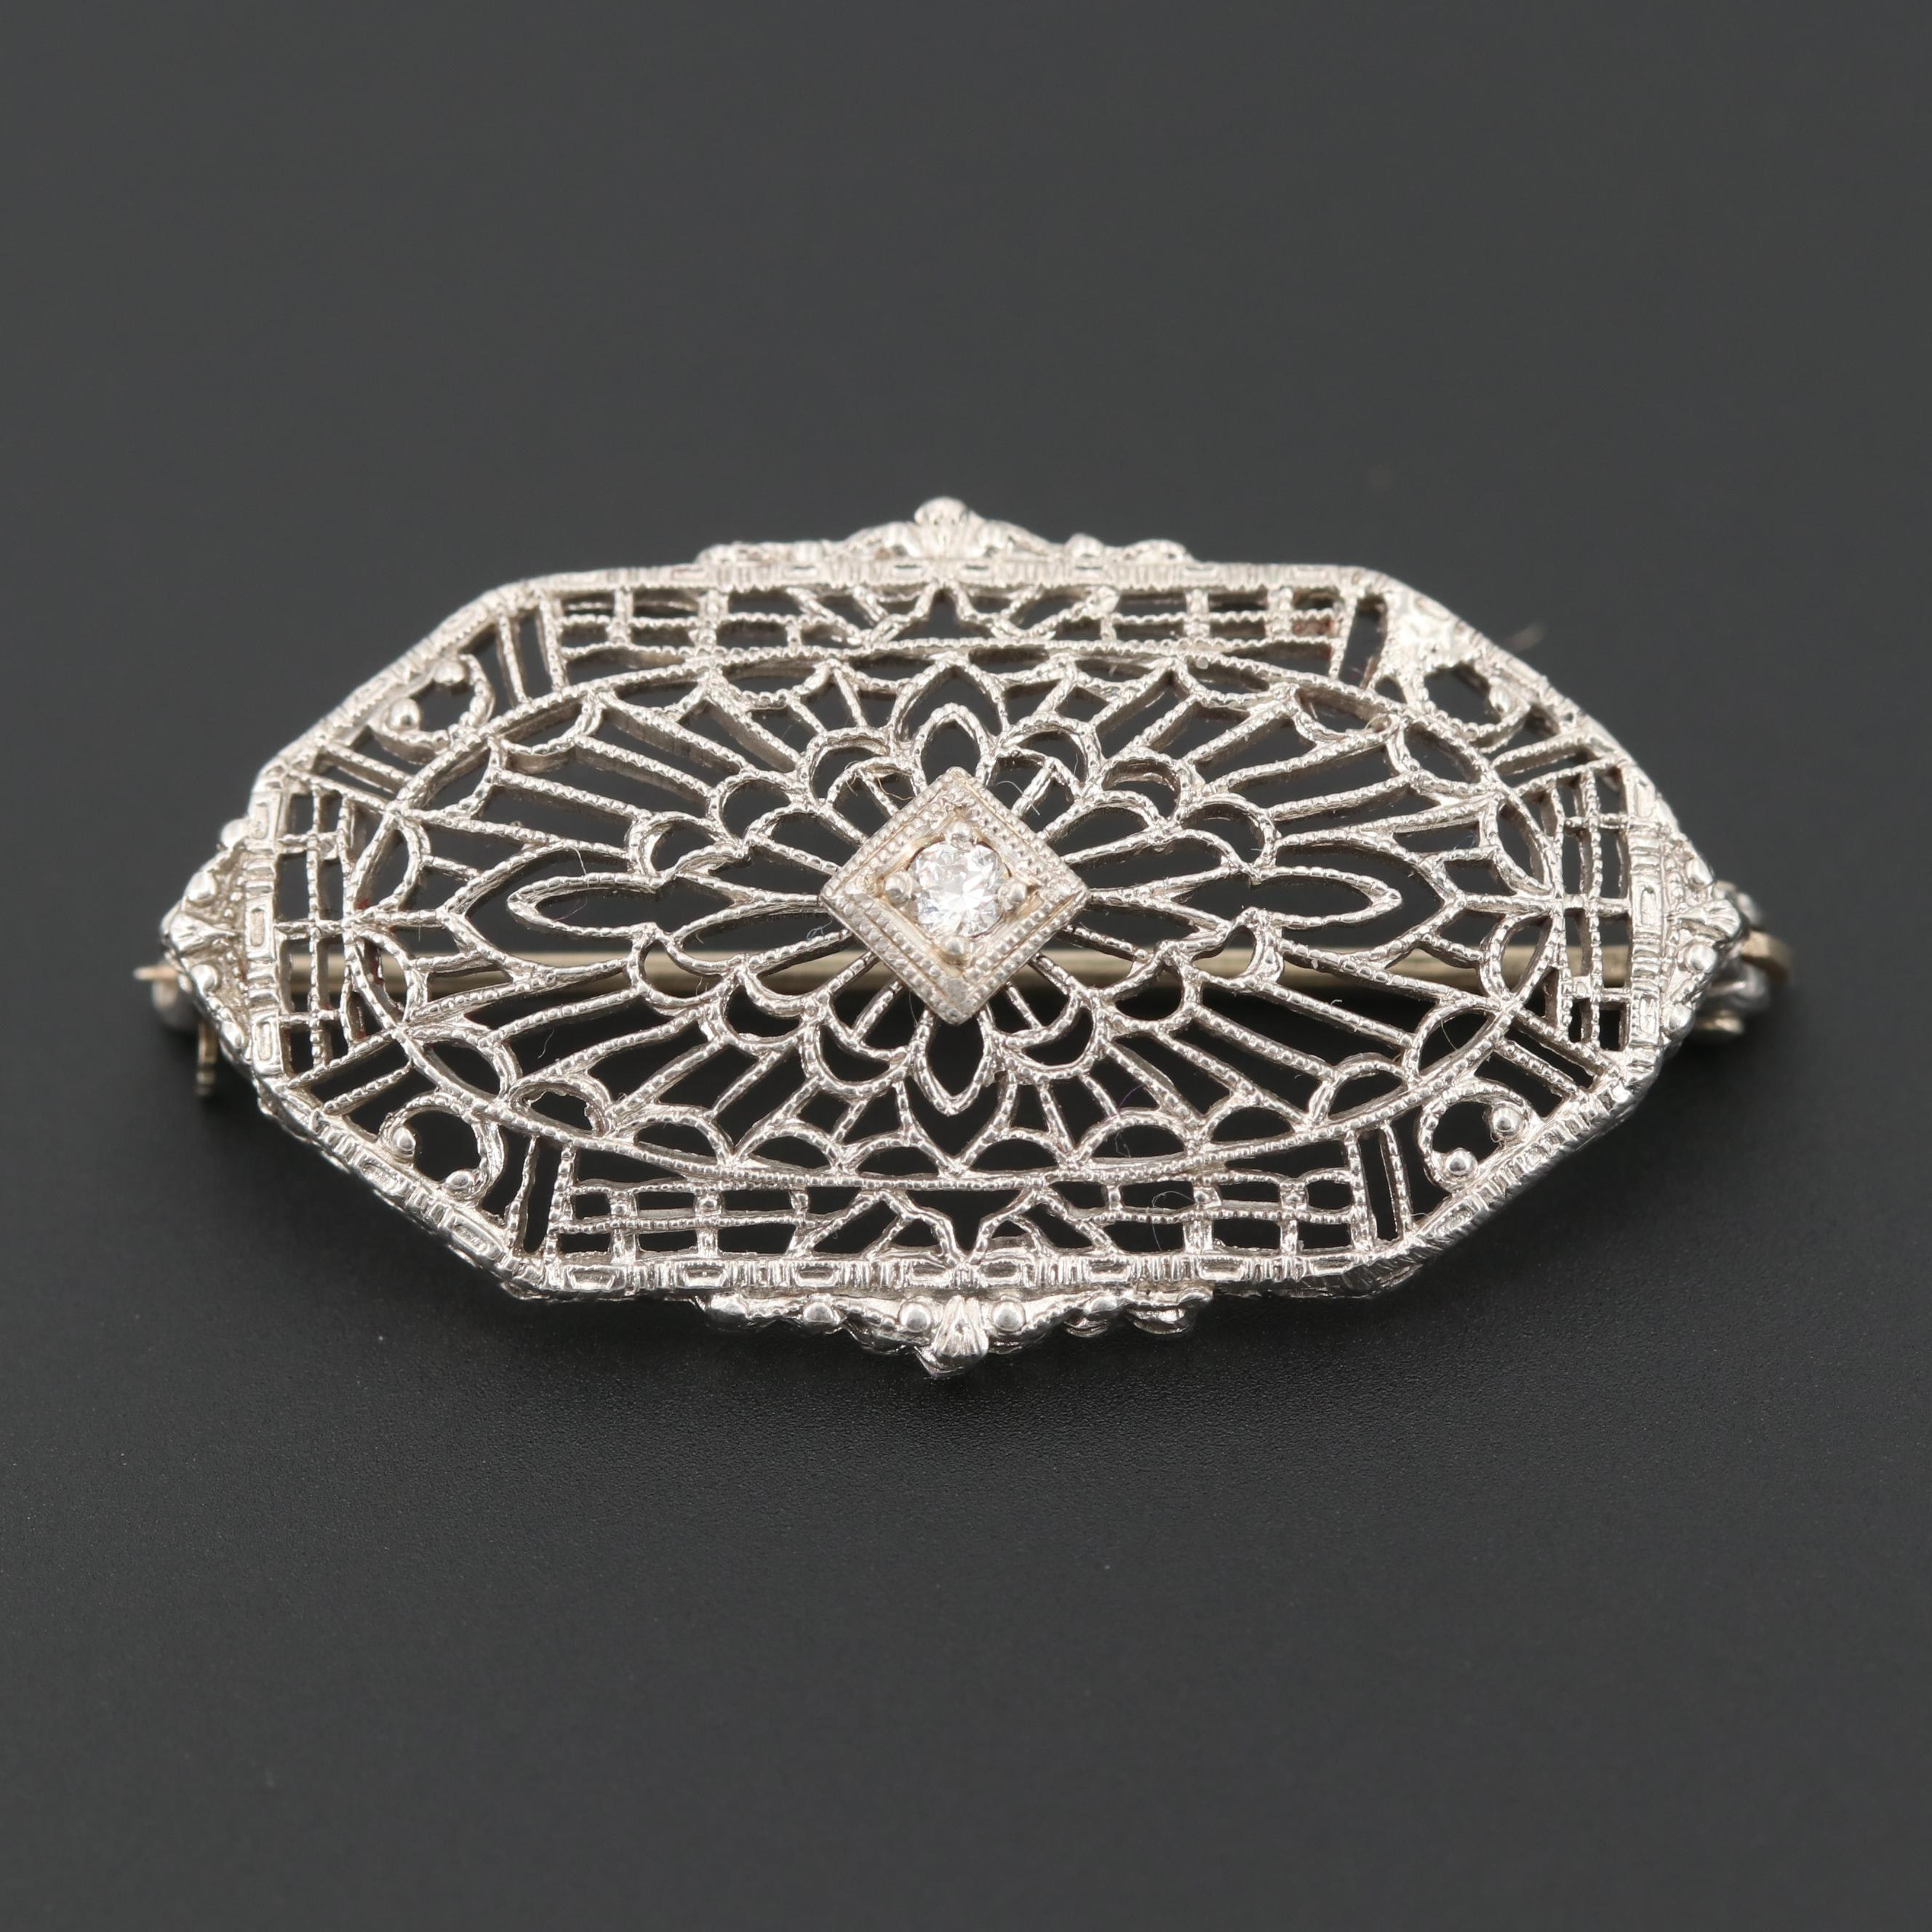 1930s Platinum Diamond Openwork Brooch